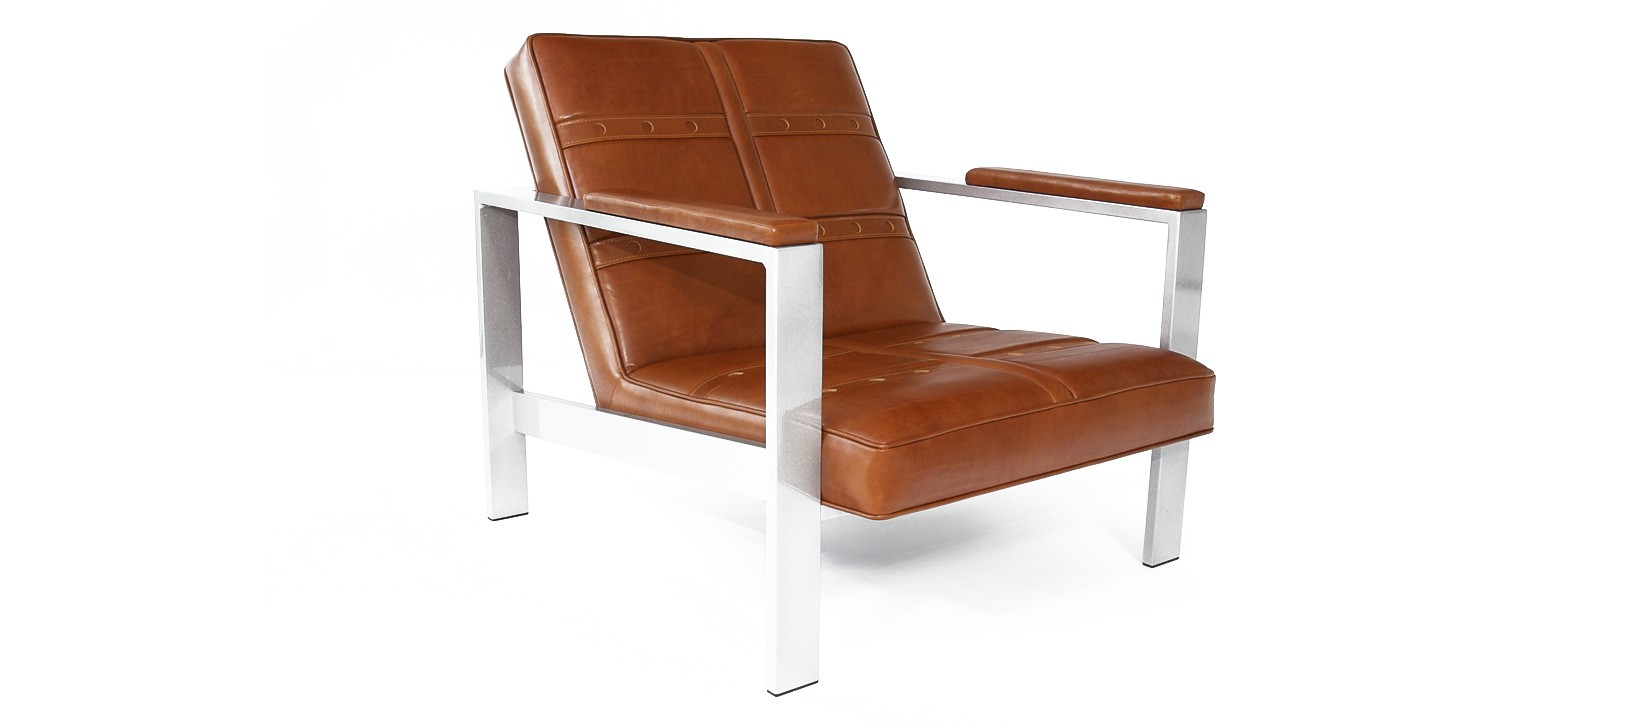 Daytona Lounge Chair by Philip Caggiano